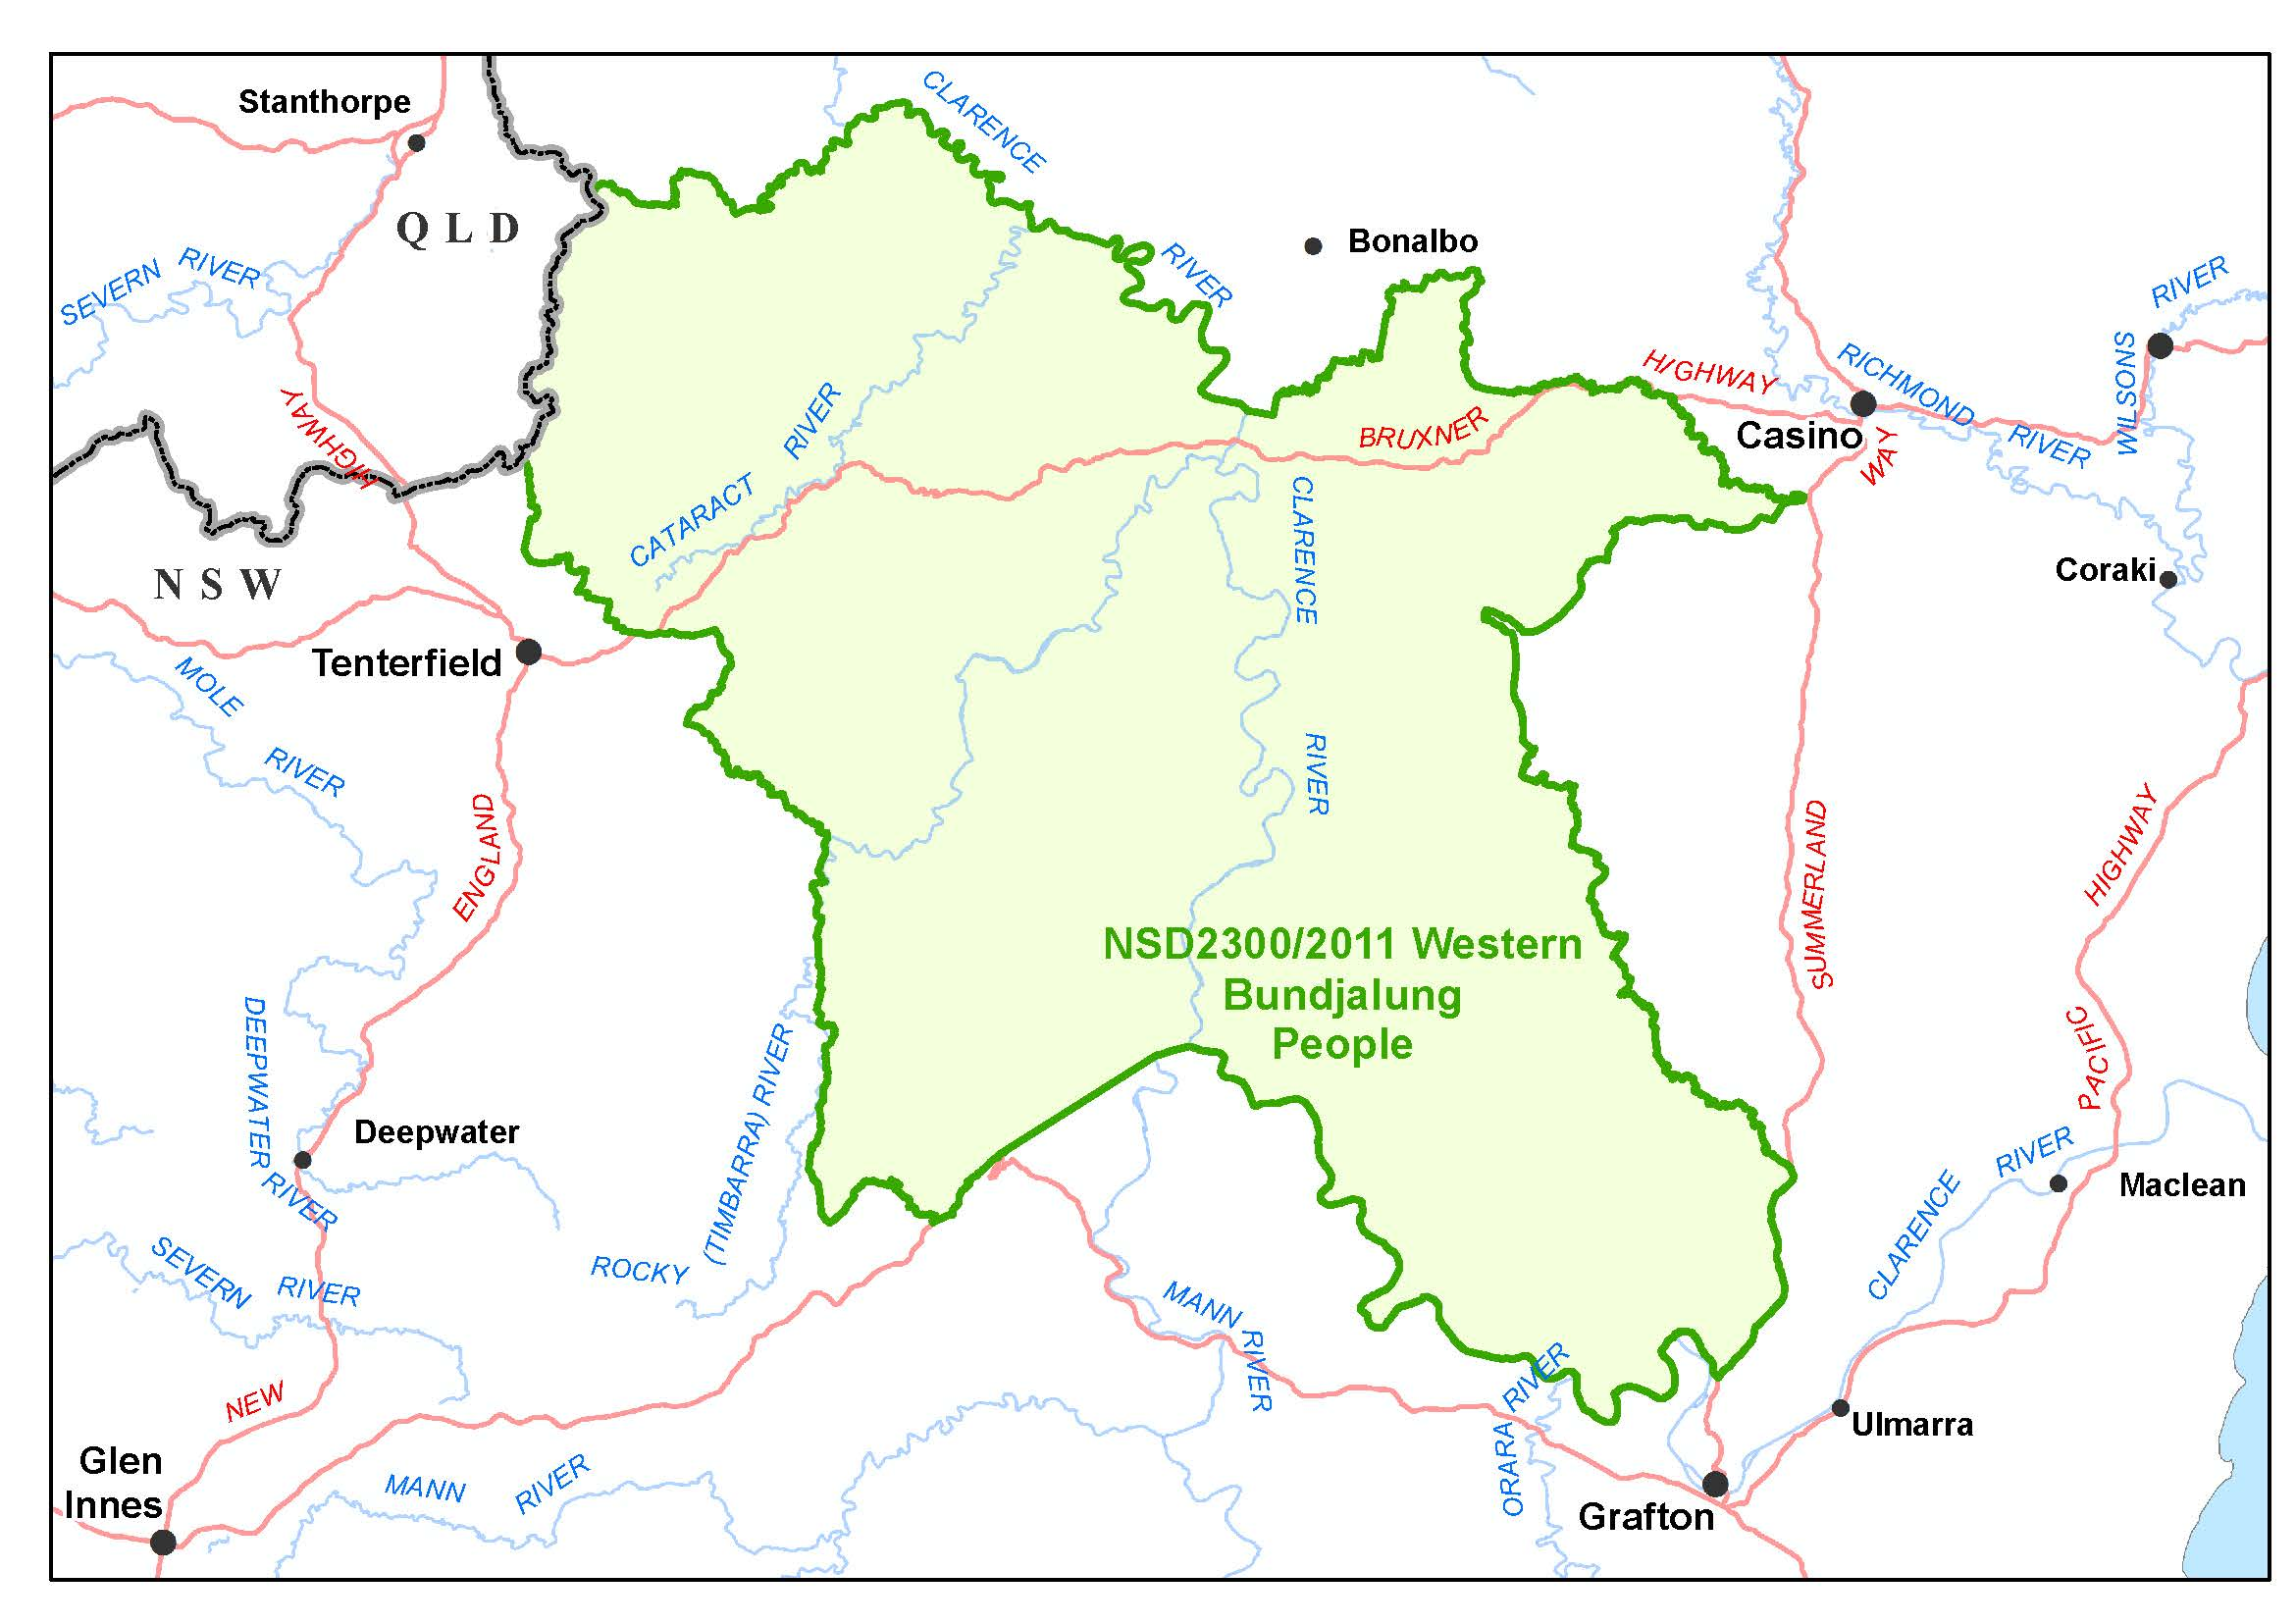 Western Bundjalung determination map covering NSW to the border of Qld